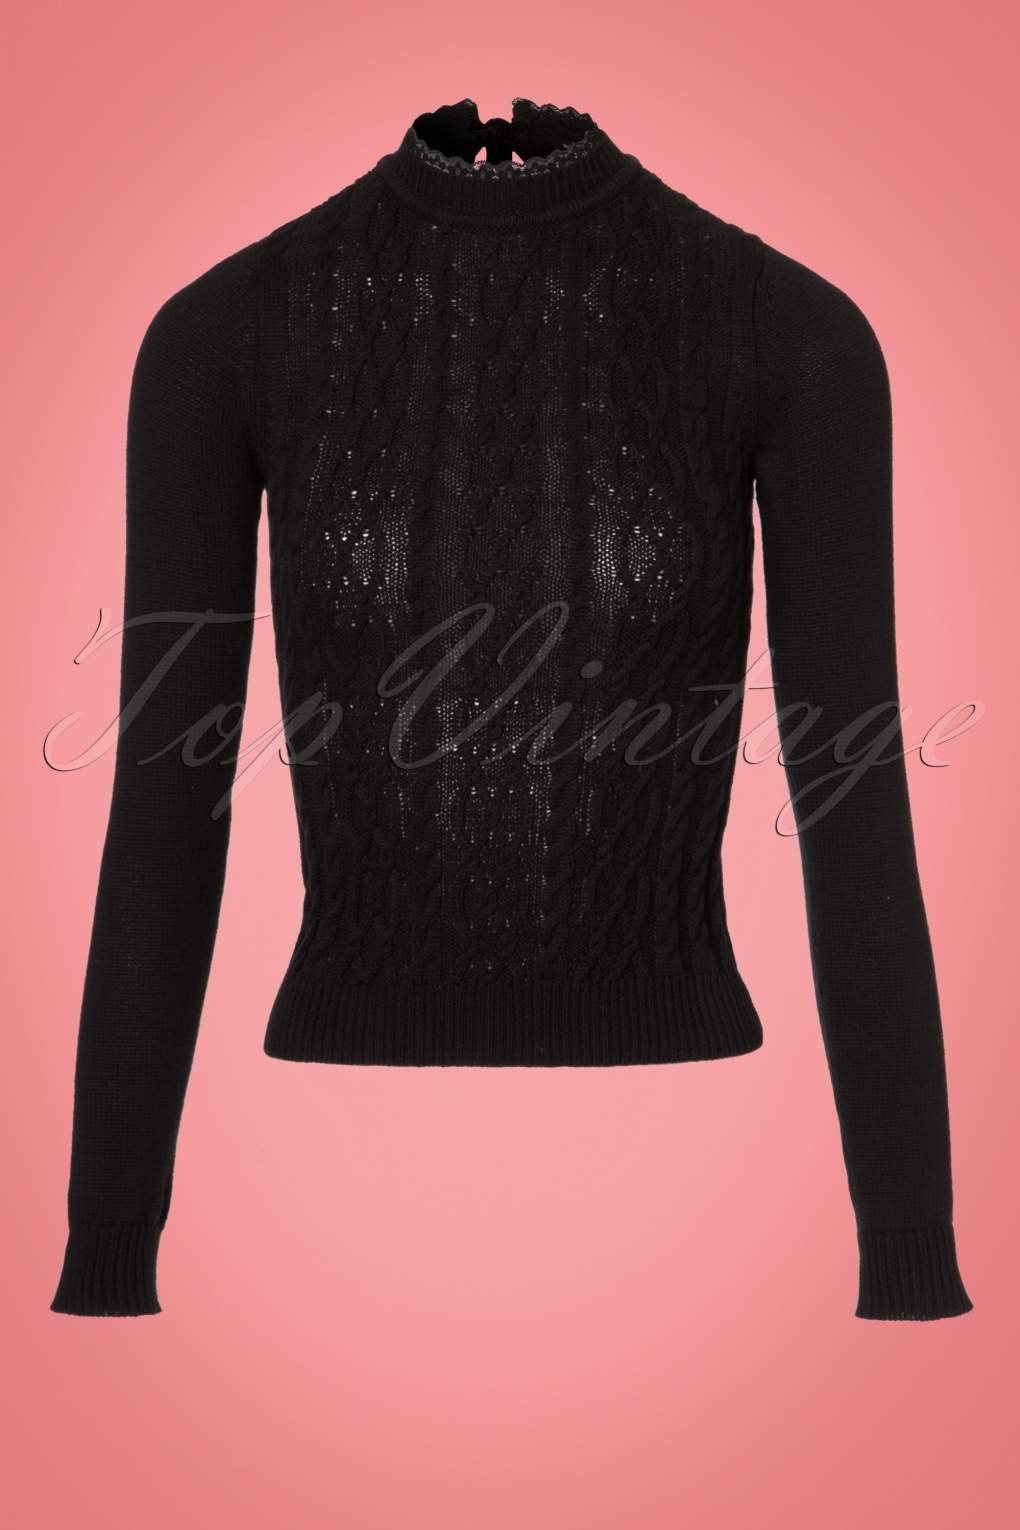 Vintage Sweaters: Cable Knit, Fair Isle Cardigans & Sweaters 60s Kat Knitted Jumper in Black £39.95 AT vintagedancer.com